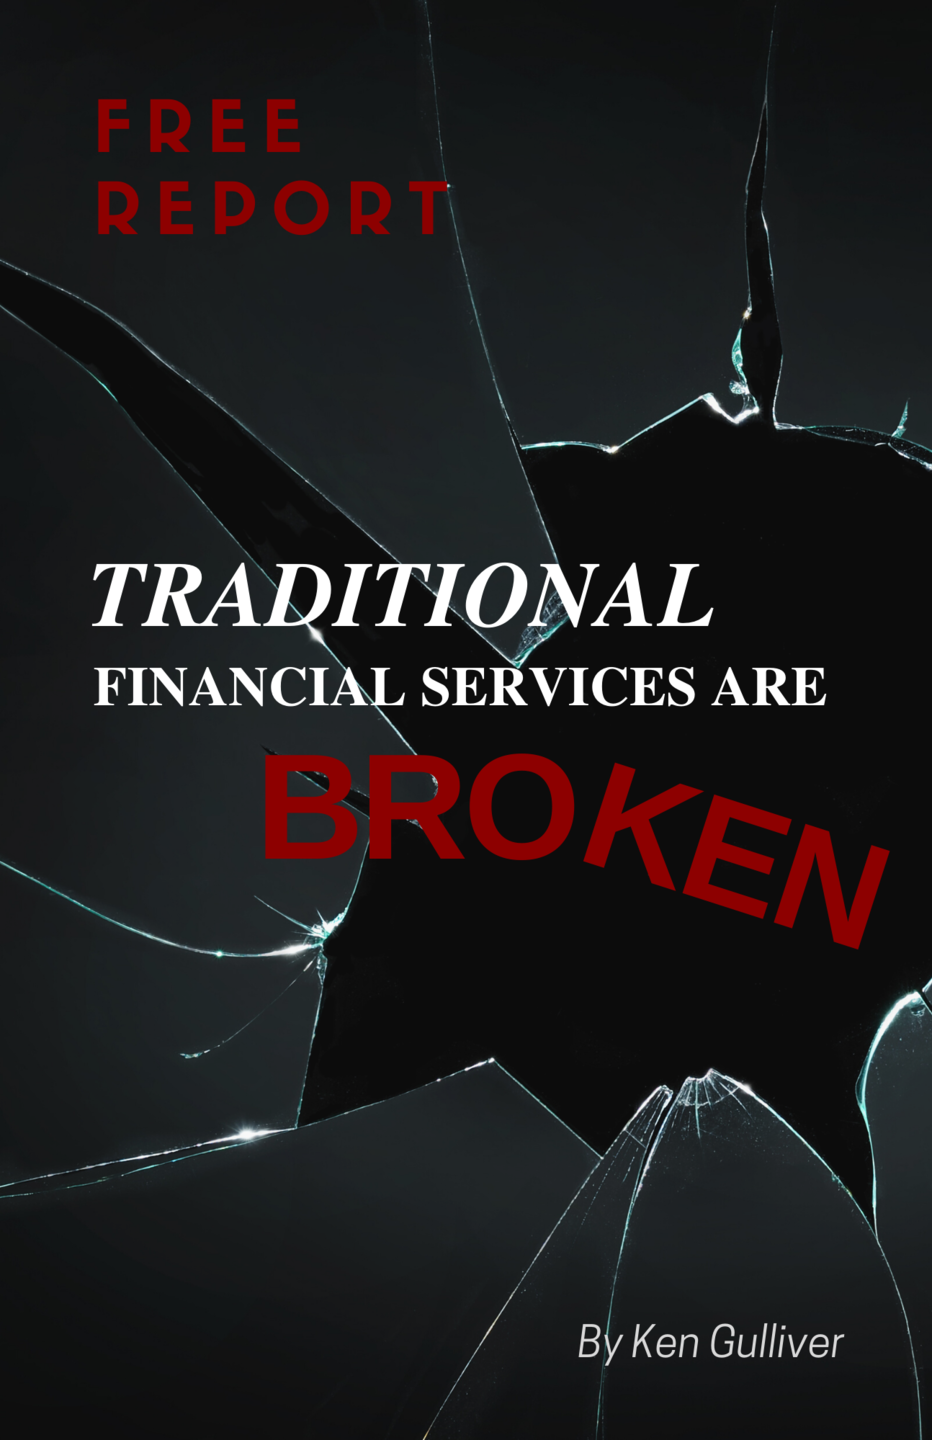 Free Report: Traditional Financial Services are Broken